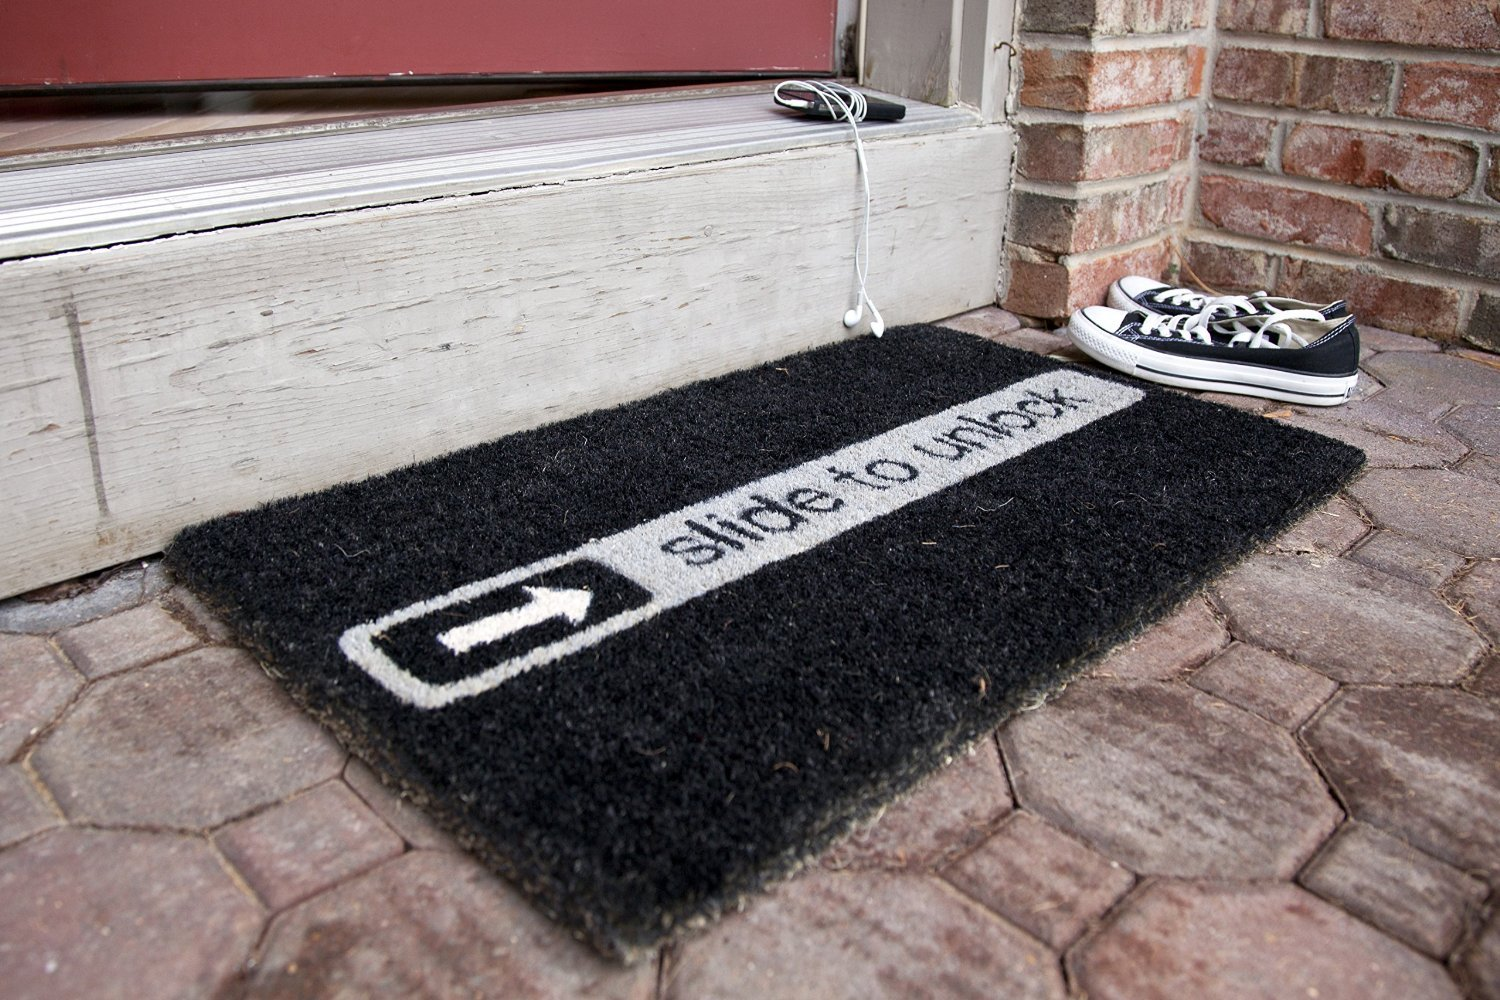 mats mat good product matt doormats welcome funny doormat damn